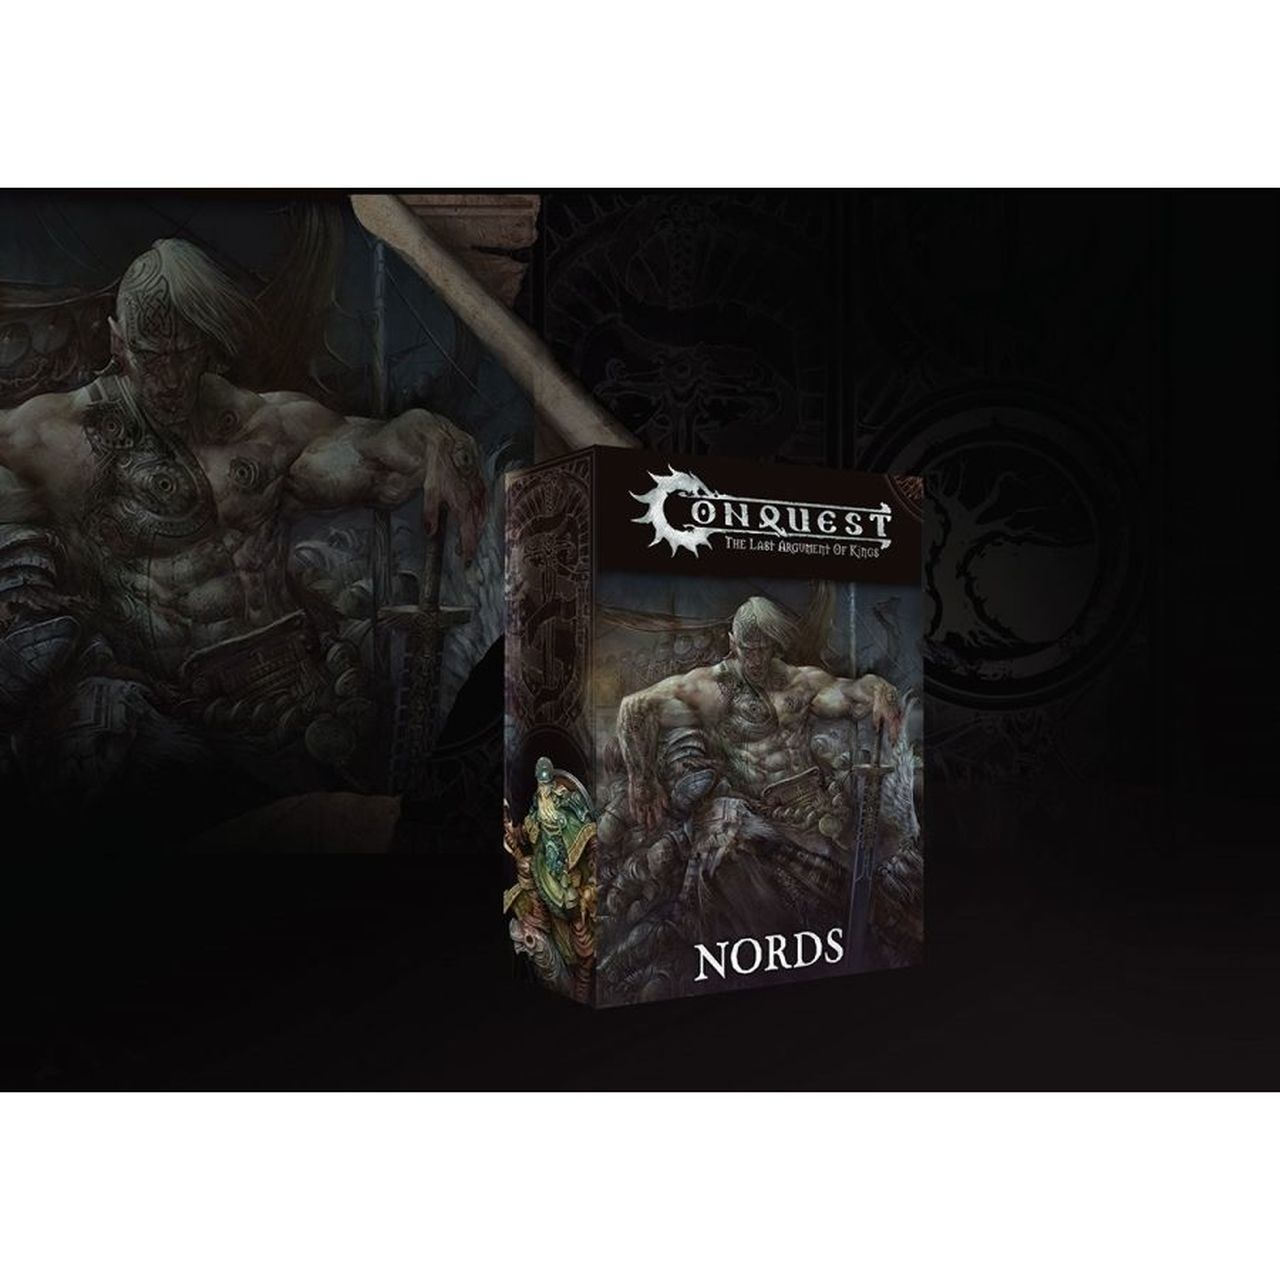 Conquest, Nords - Army Card Sets (PBW8008)